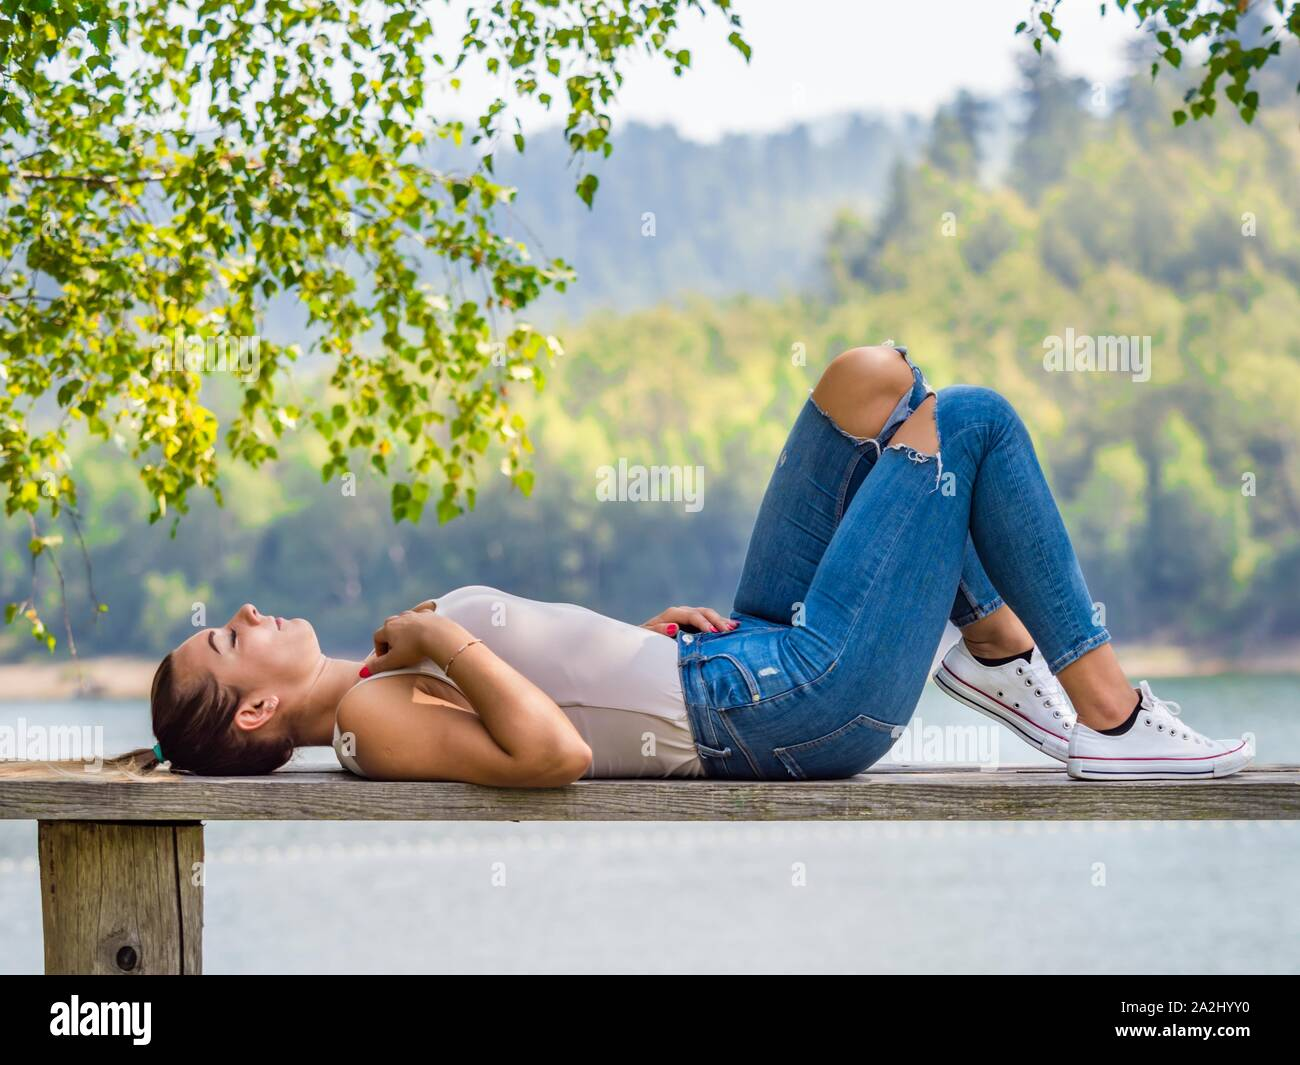 Young woman wearing Blue denim pants denims is resting lying on her back on wooden bench in park near lake Stock Photo